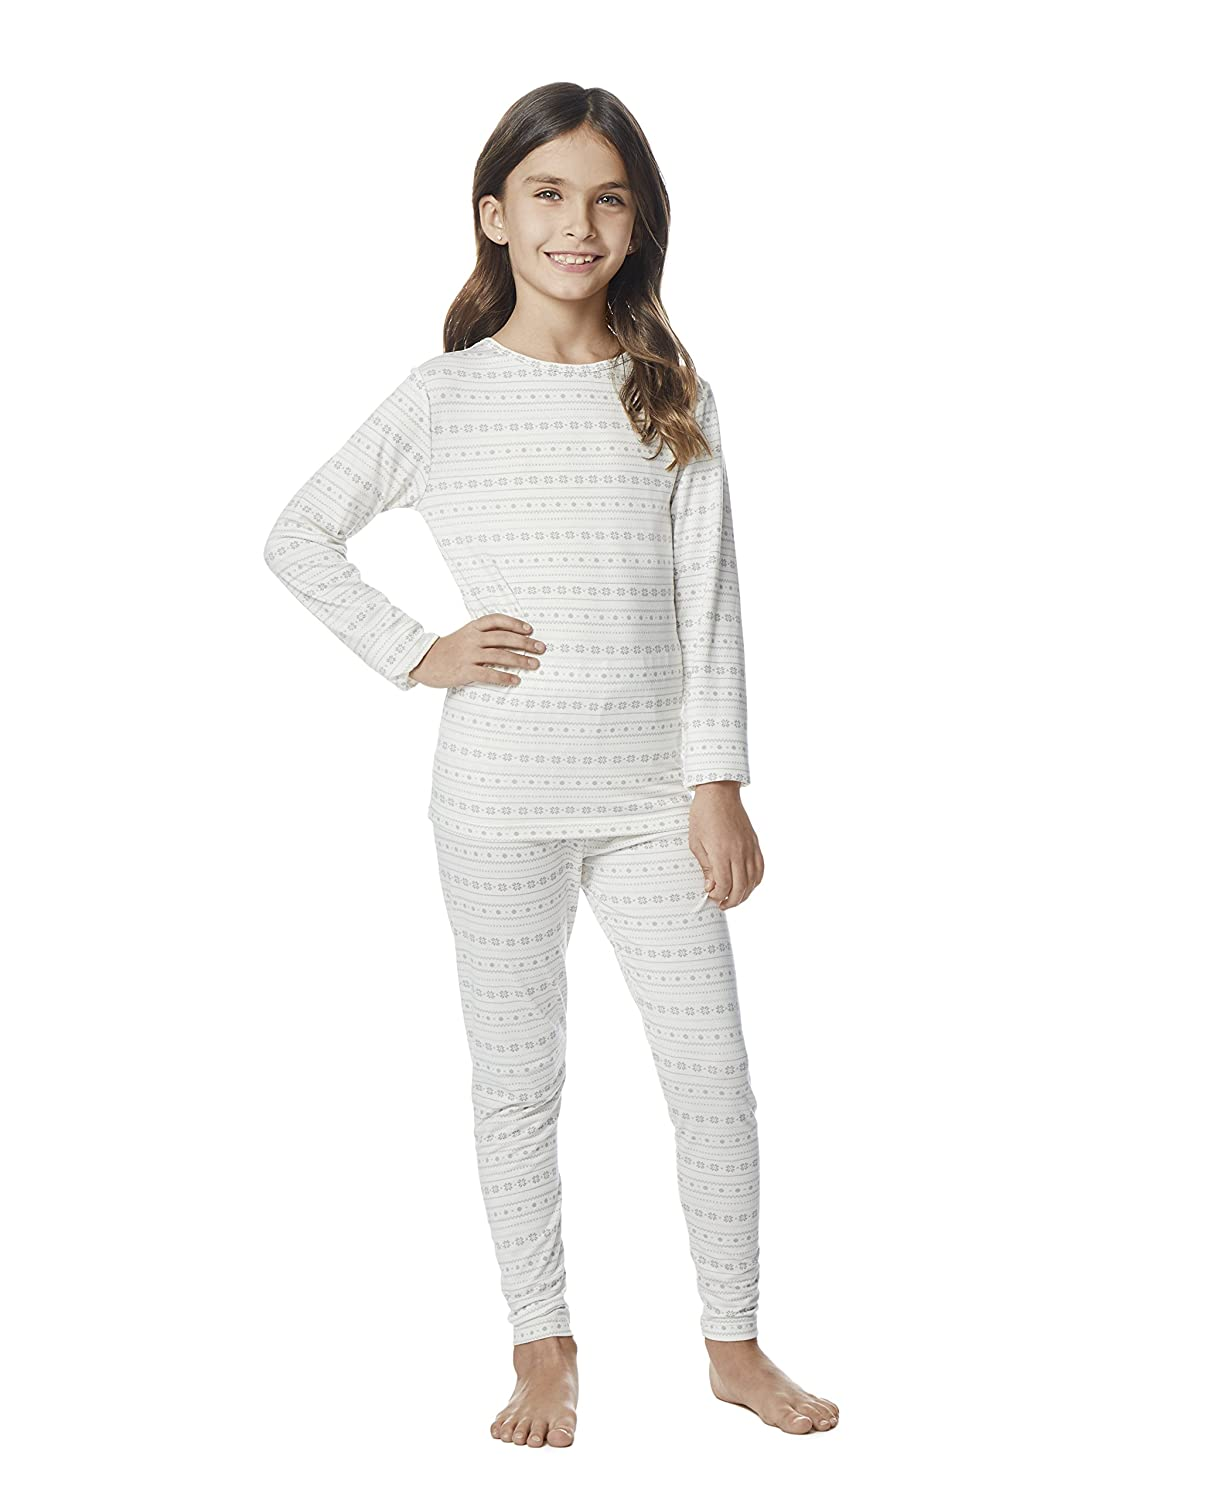 32 Degrees Weatherproof Big Girl's Base Layer Thermal Shirt Long Underwear Set 32Degree_Girl_Small-P